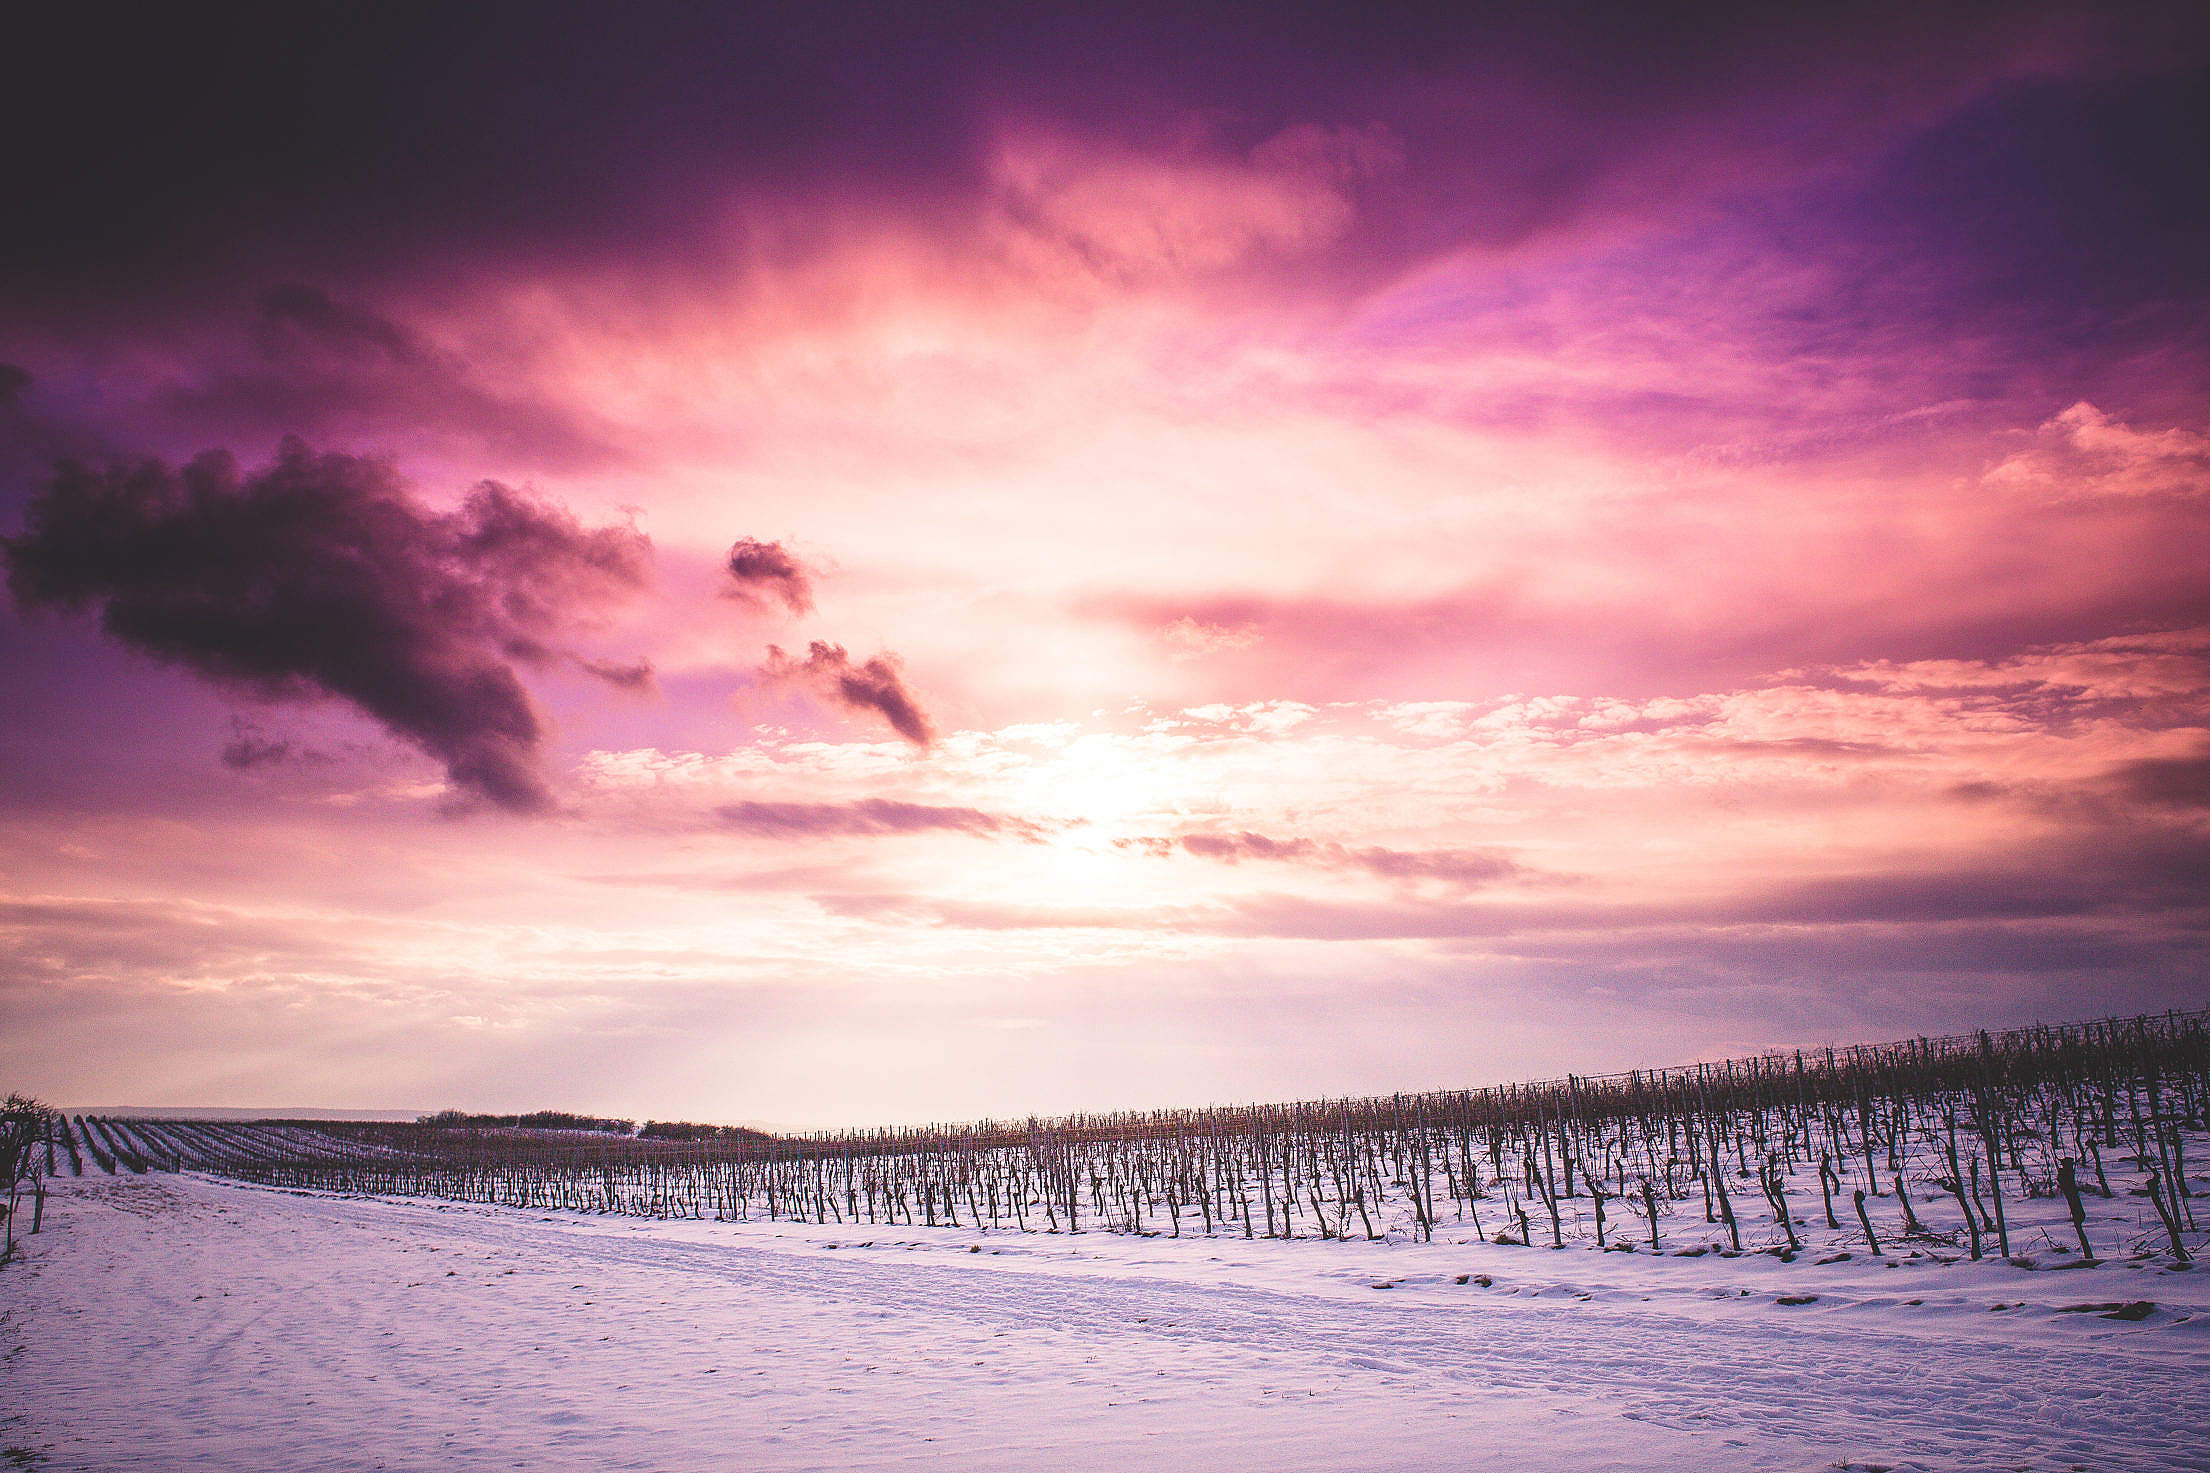 Sun and Clouds over Snowy Wineyard Free Stock Photo